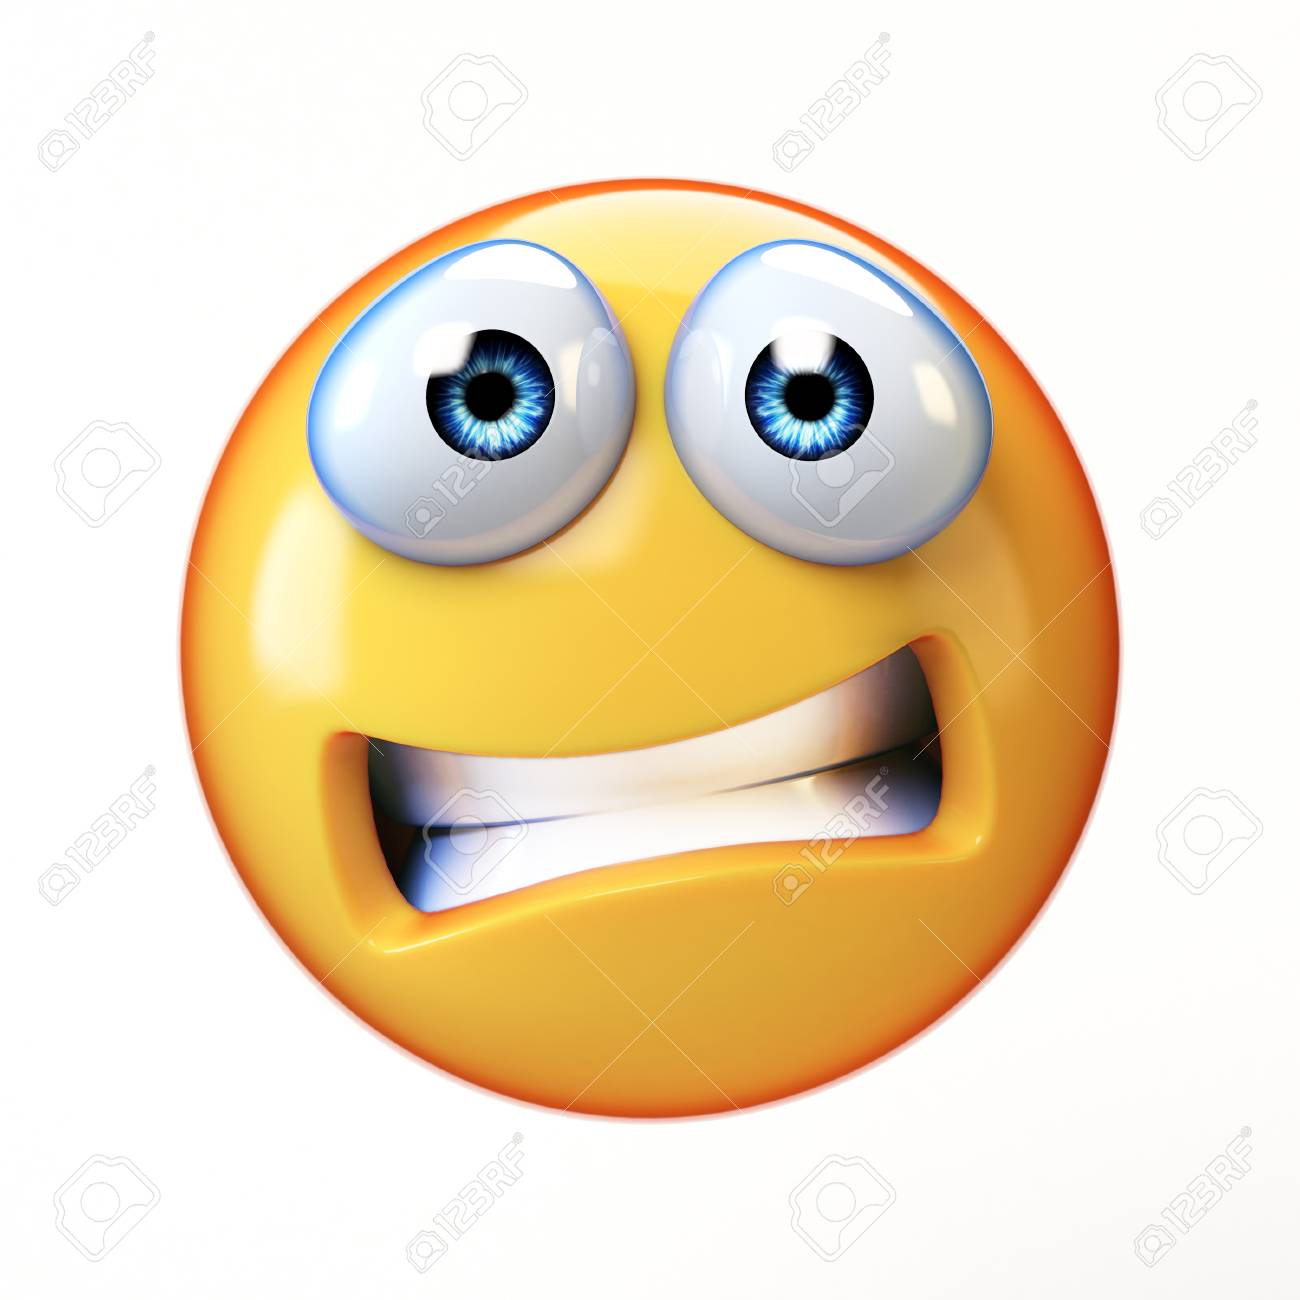 scared emoji isolated on white background emoticon in fear 3d